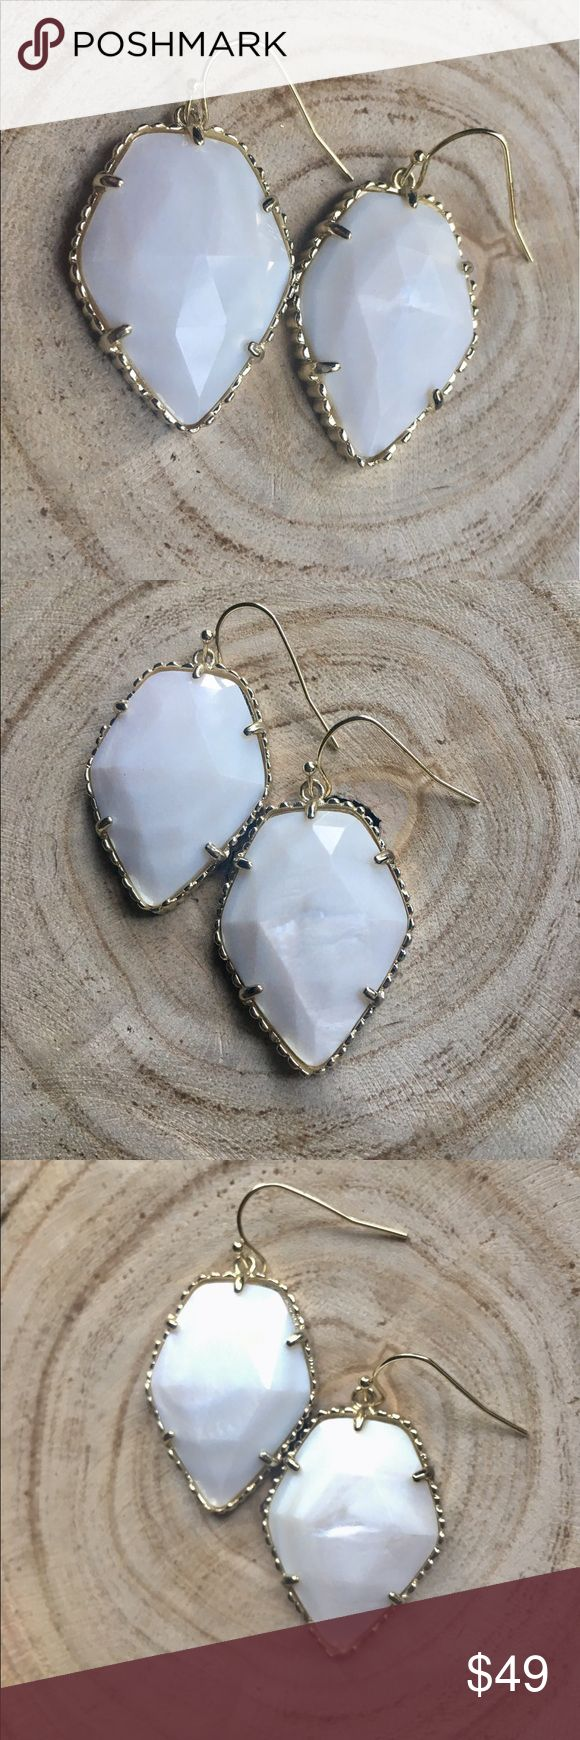 KENRA SCOTT MOTHER OF PEARL CORLEY Kendra Scott Corley. White and Gold. Dust bag included. Will include new rubber backings. Only selling these because I now have two pair. Bought another pair thinking I lost an earring. Found it in the couch yesterday. 😖 Kendra Scott Jewelry Earrings